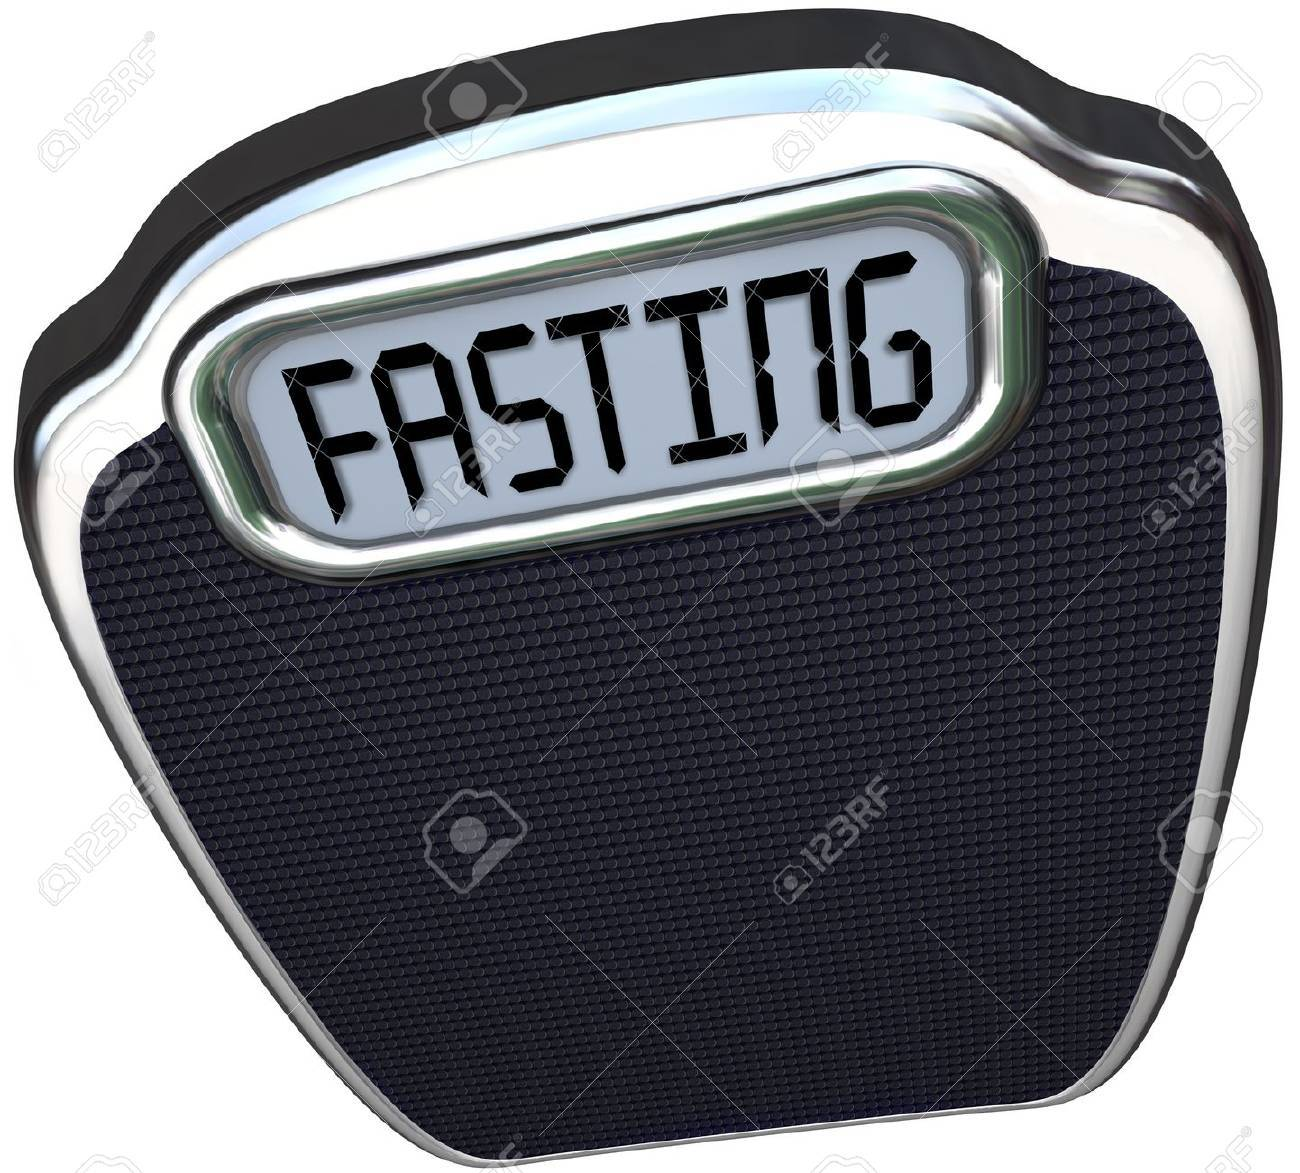 The word Fasting on a digital display of a scale to represent the new 5:2 diet fad or craze in which you reduce calories for two days and eat normally for five Stock Photo - 18985411